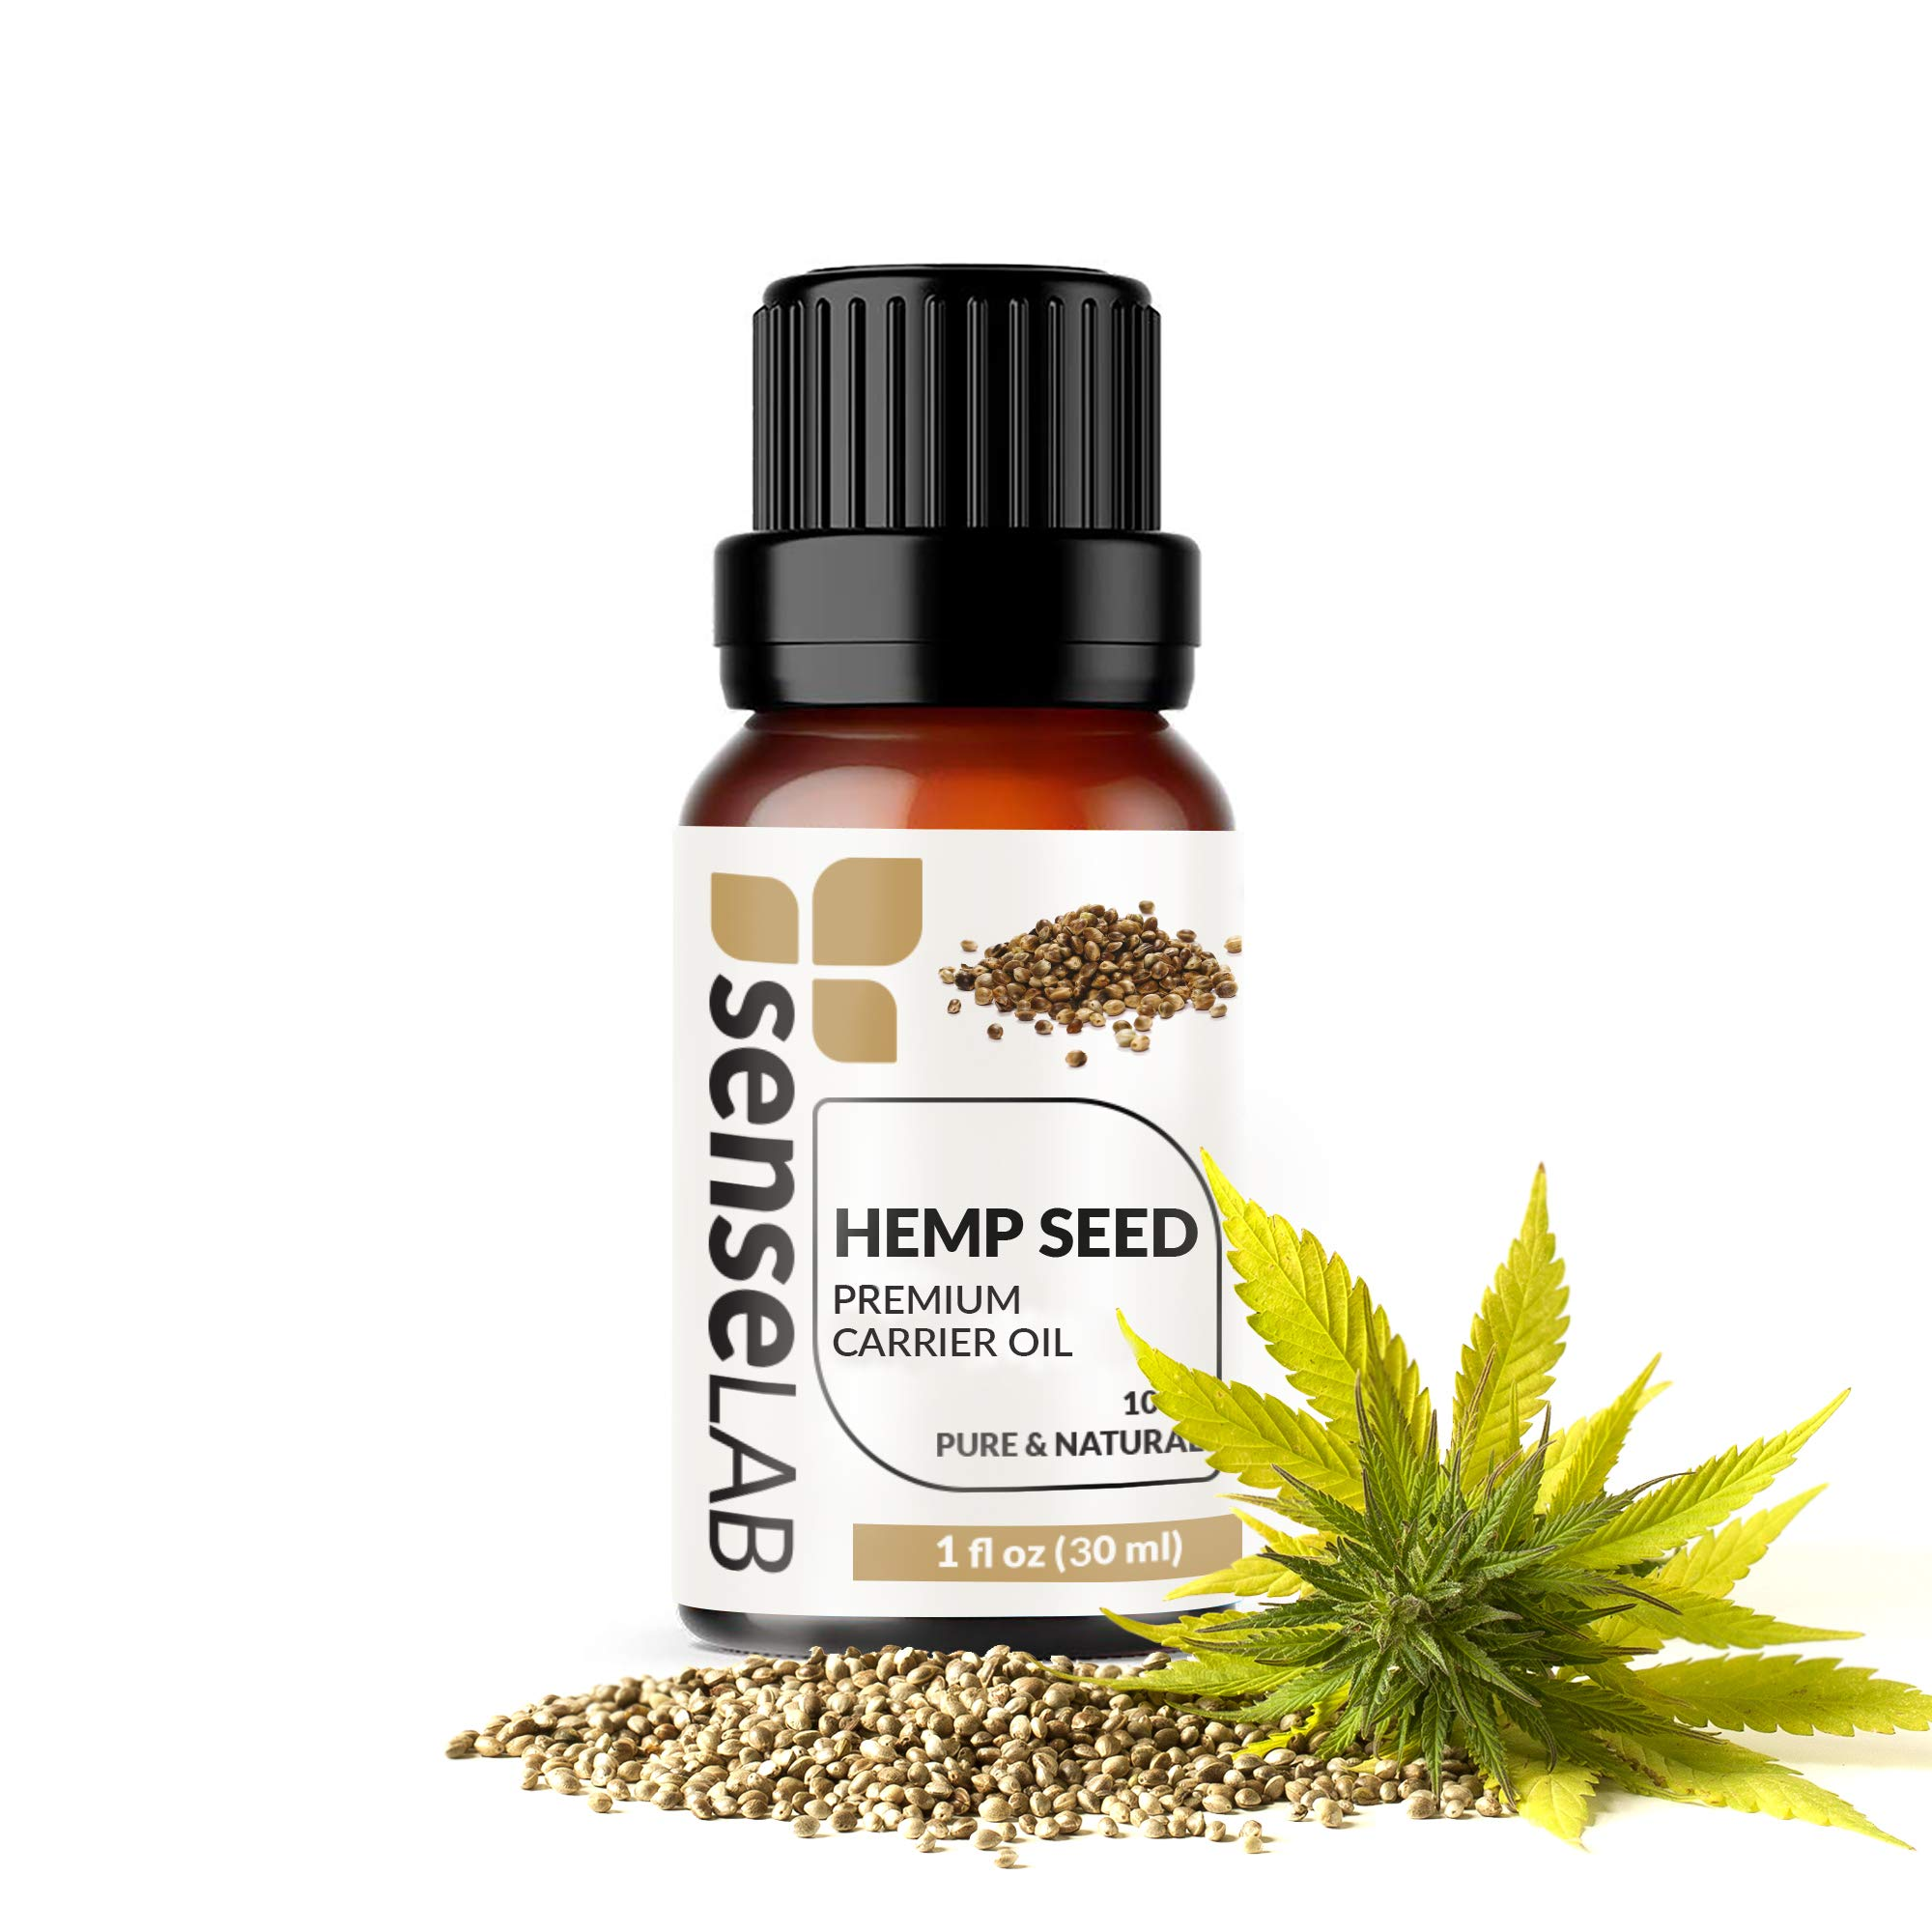 Hemp Seed Oil 100 Pure Extract Hemp Seed Carrier Oil Therapeutic Grade 1 Fl Oz 30 Ml